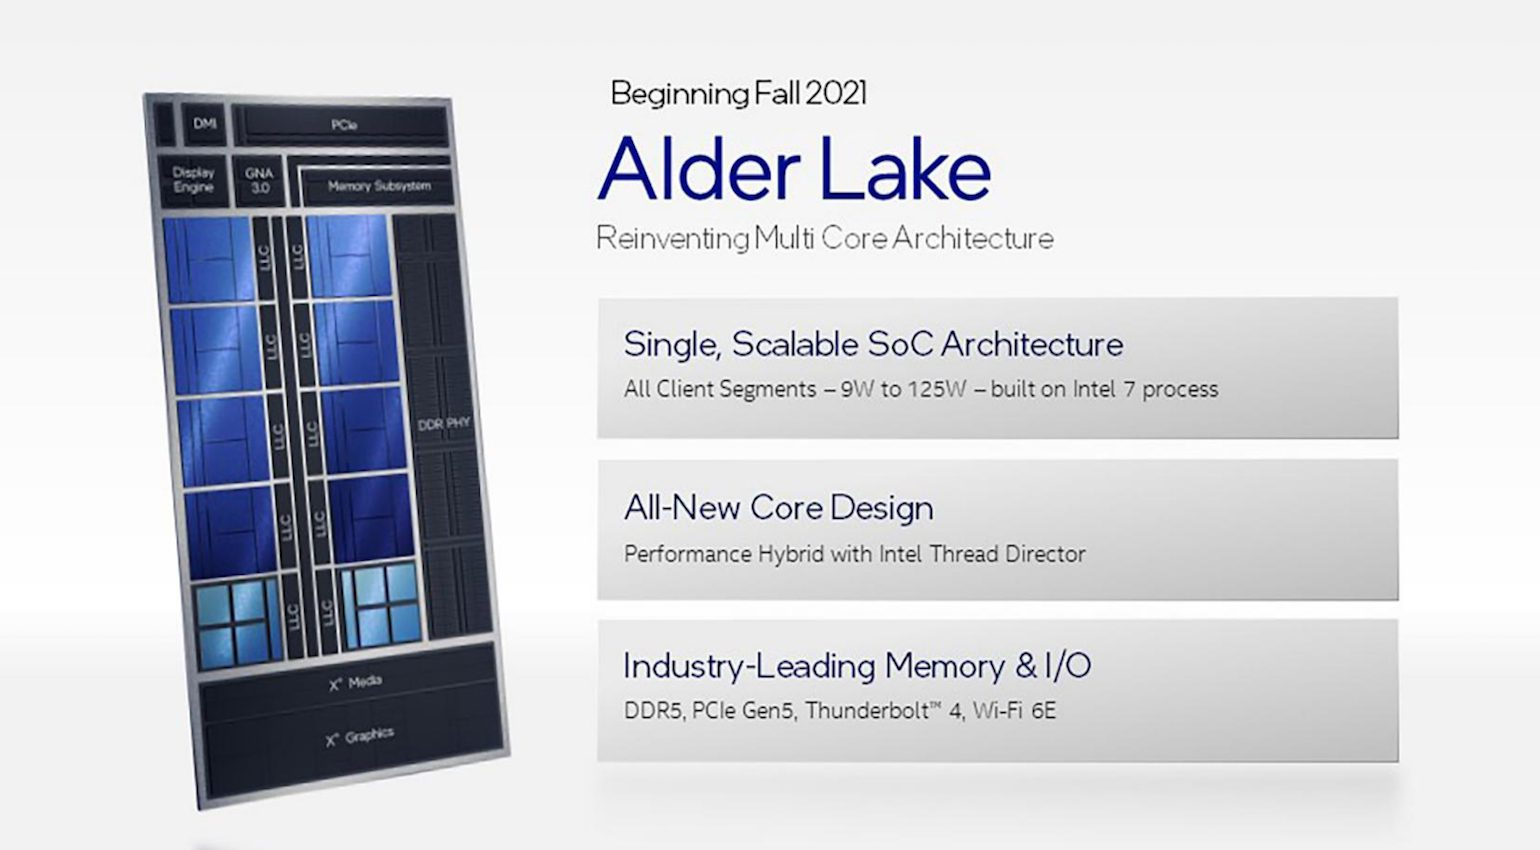 The Intel Alder Lake is coming this fall!